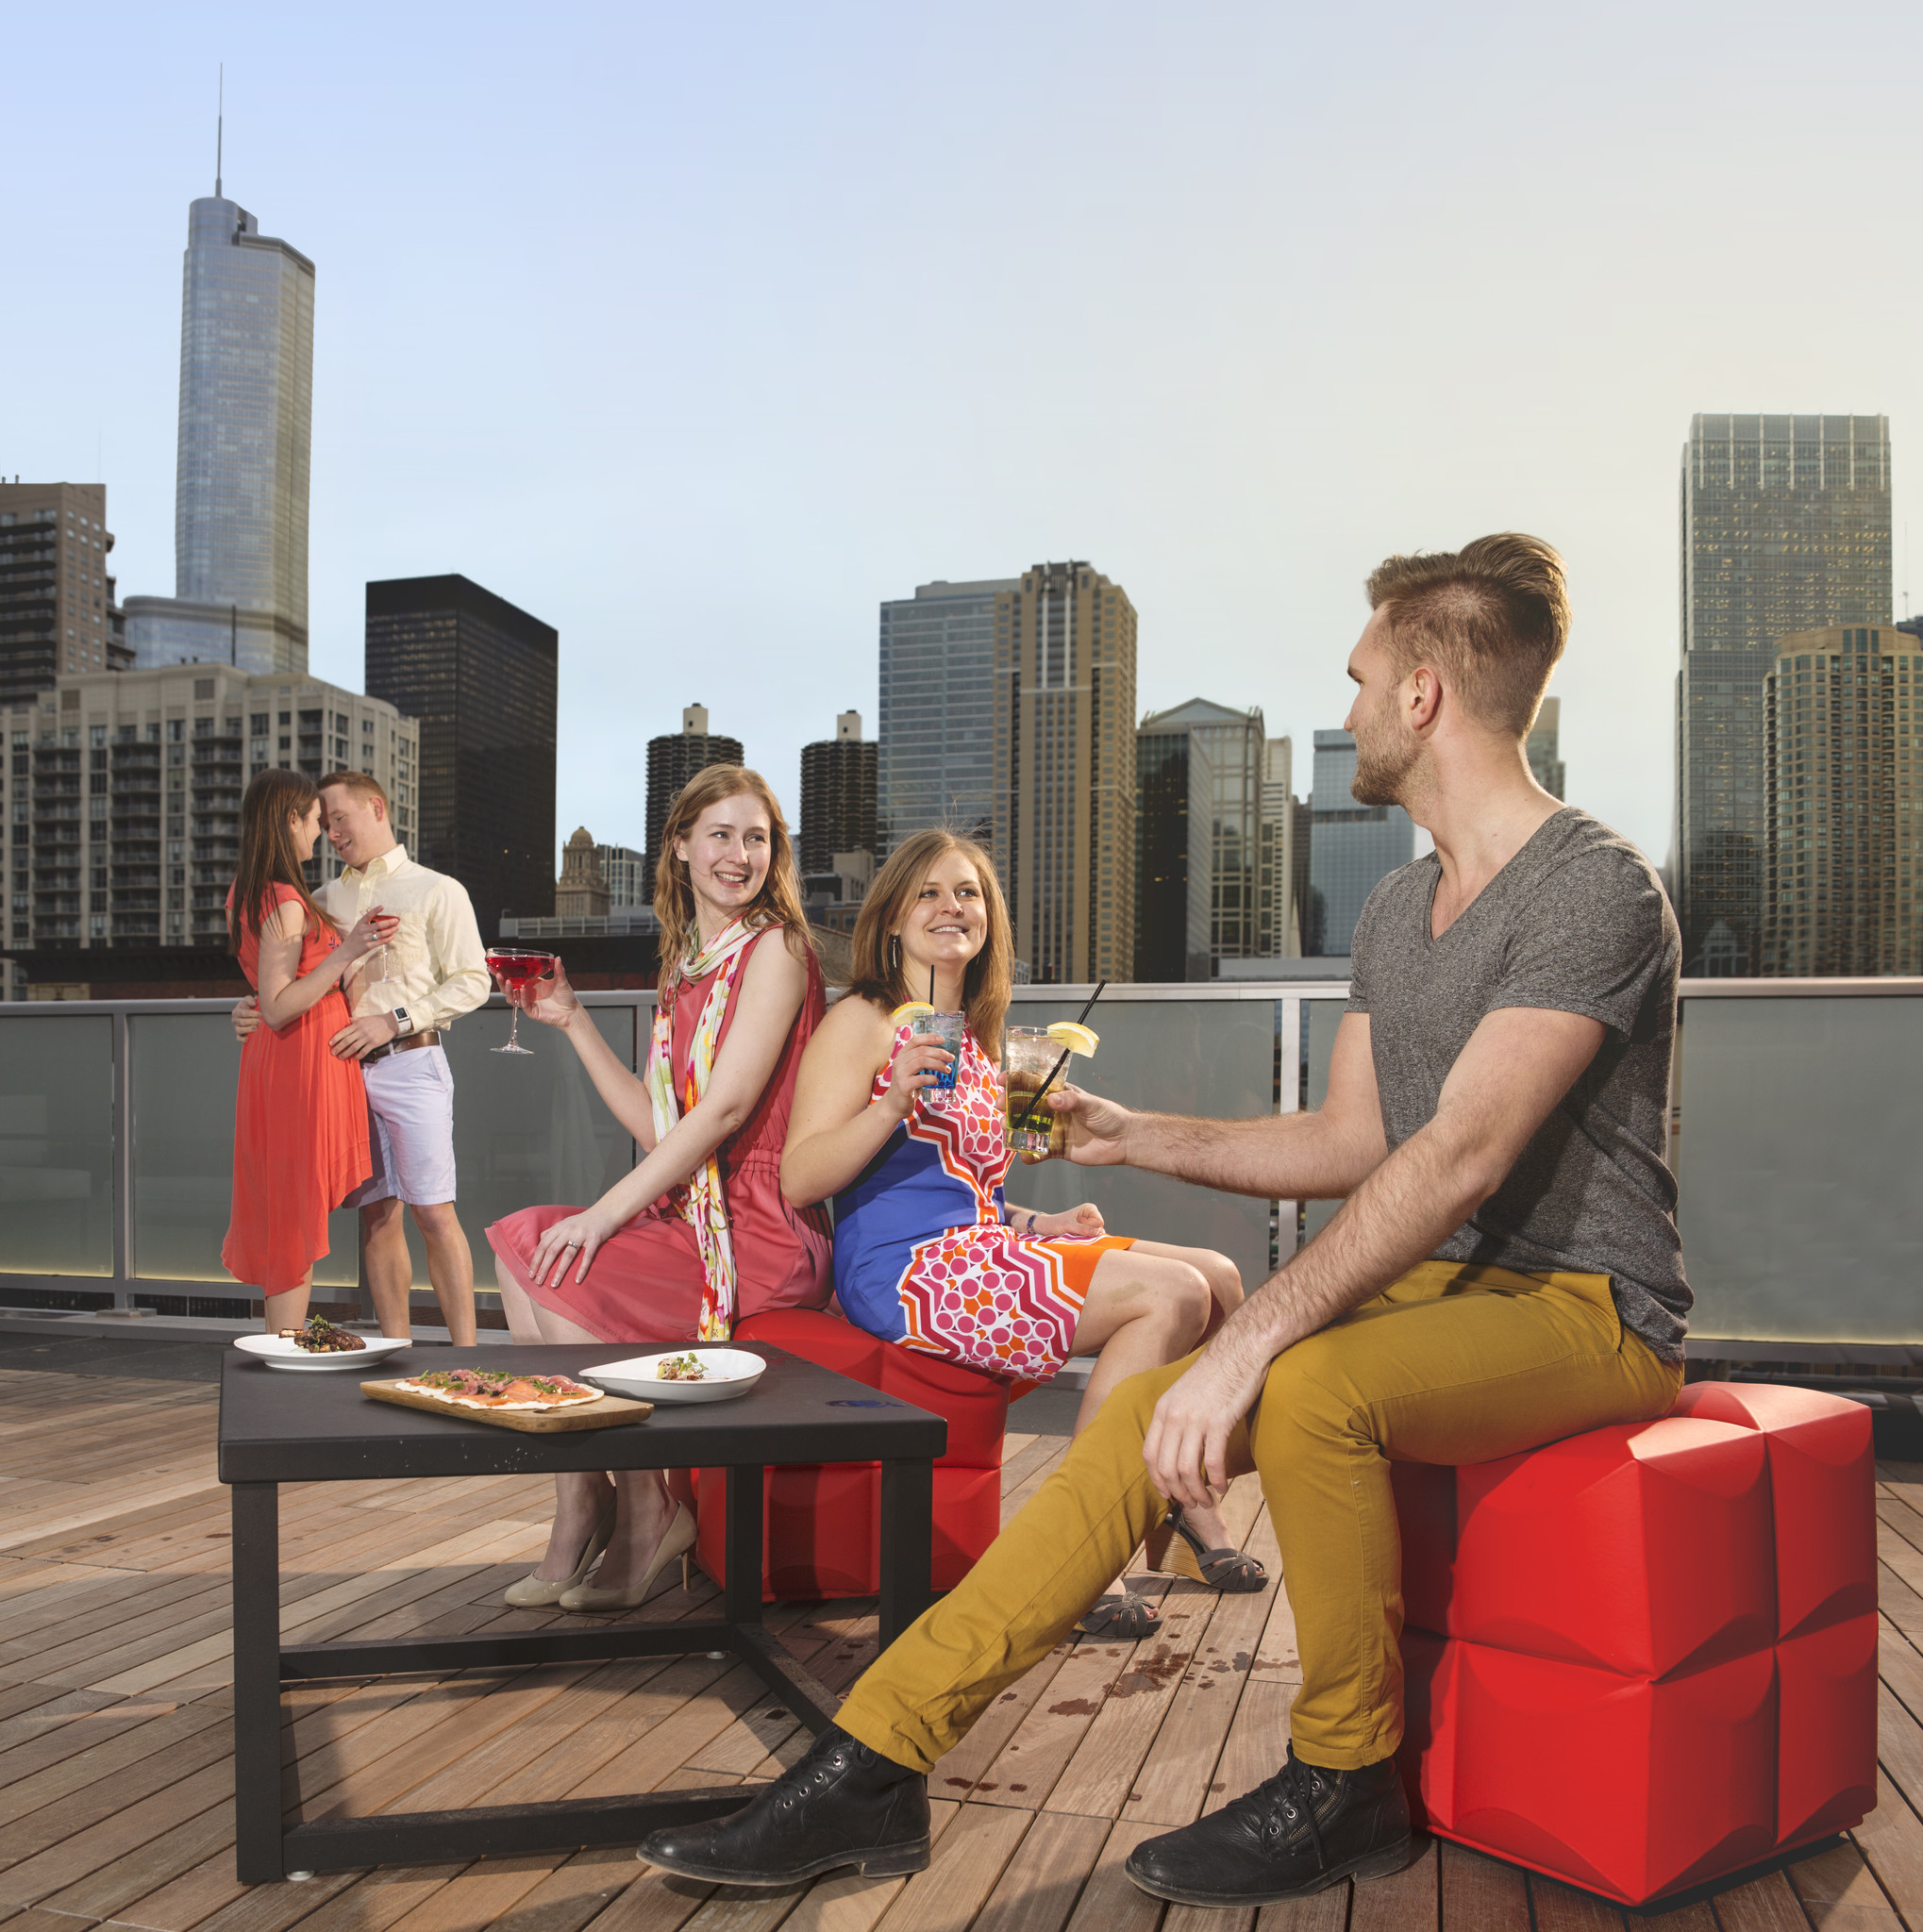 2014 Chicago outdoor dining and drinking preview - RedEye Chicago